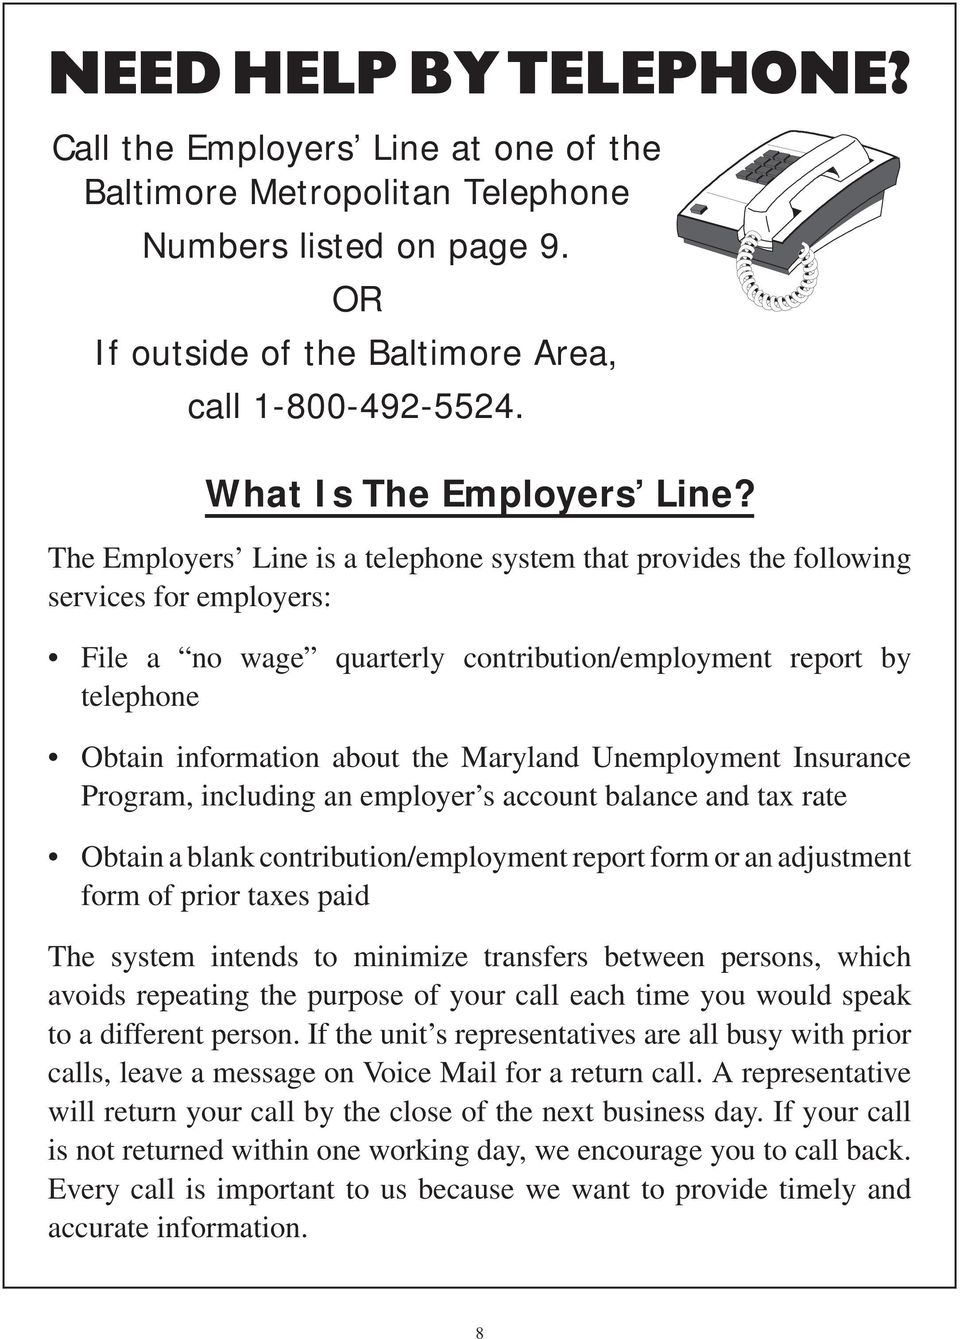 The Employers Line is a telephone system that provides the following services for employers: File a no wage quarterly contribution/employment report by telephone Obtain information about the Maryland